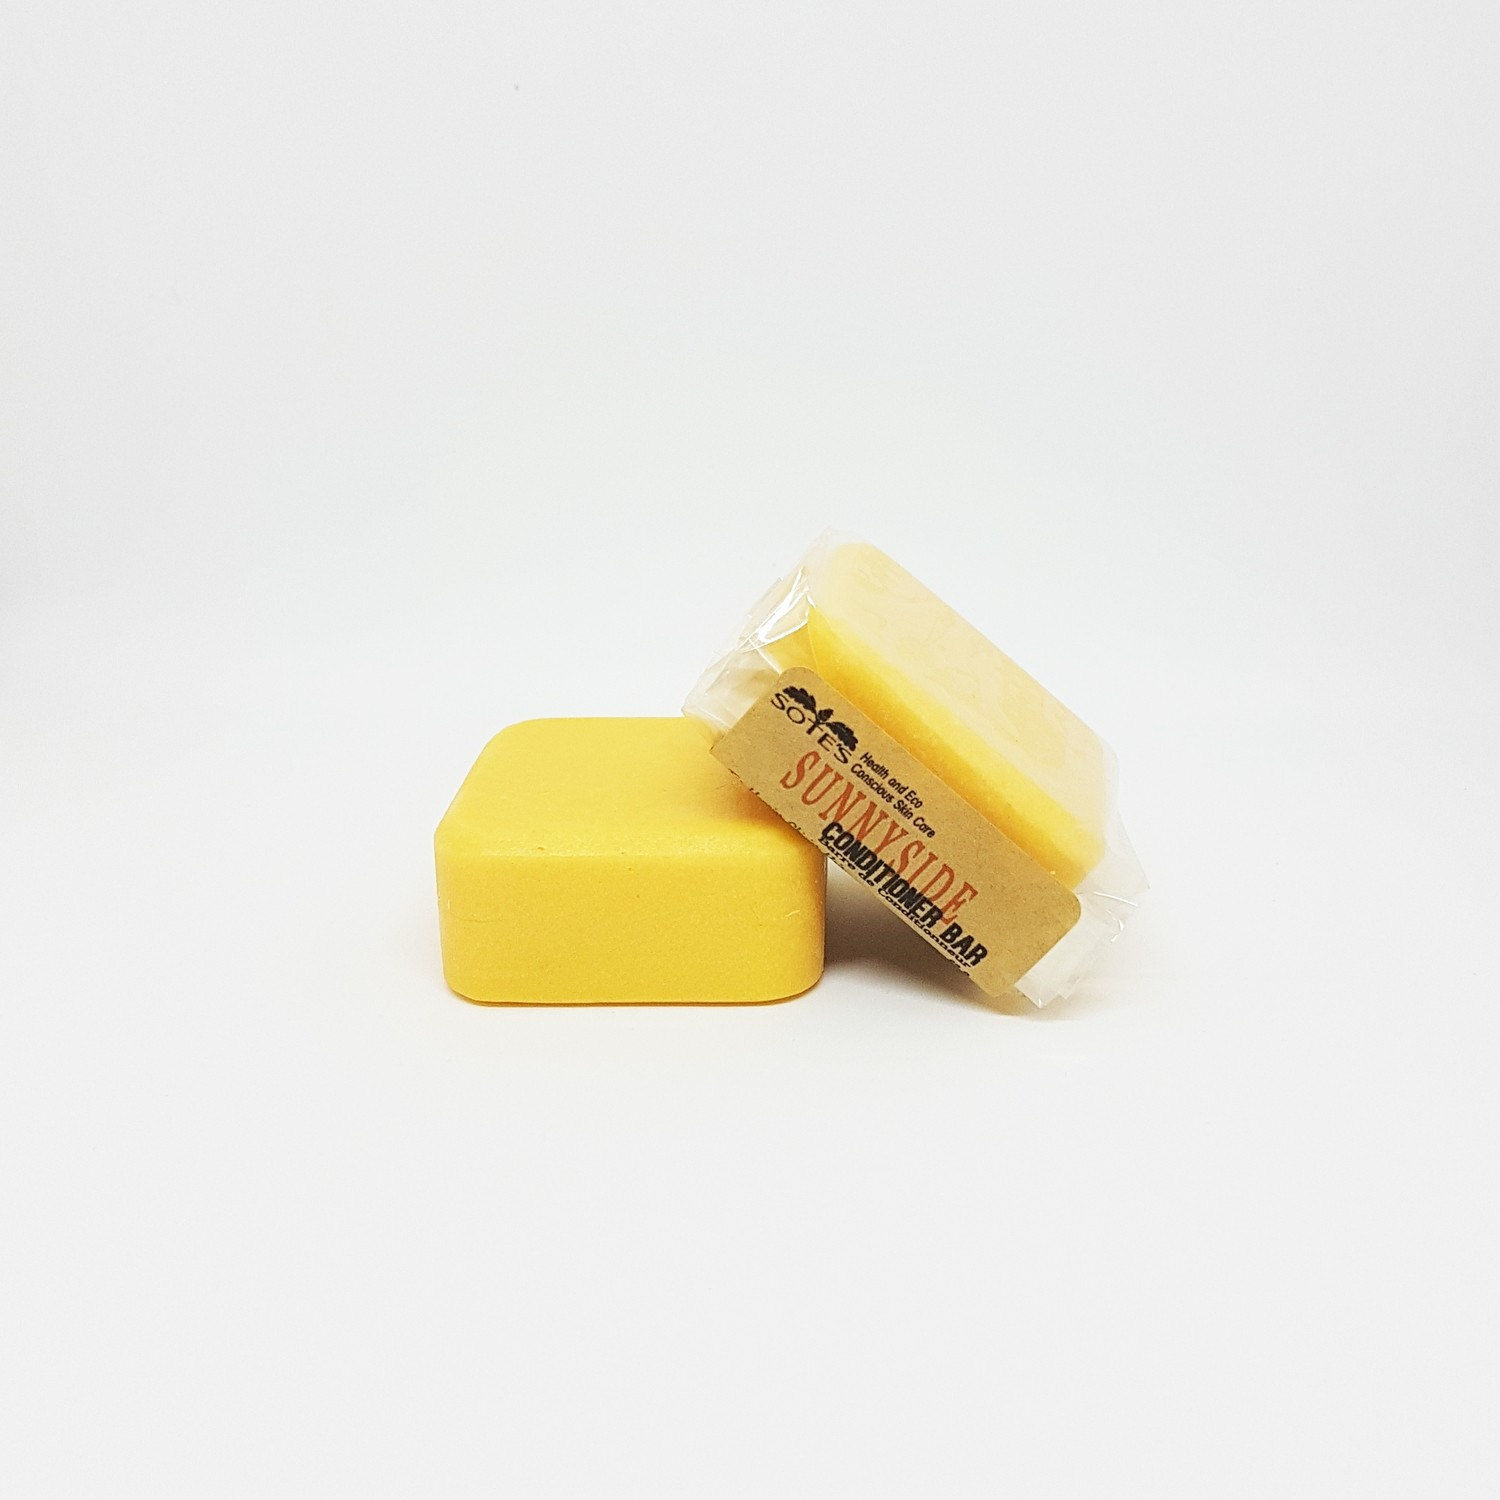 Sunnyside Conditioner Bar